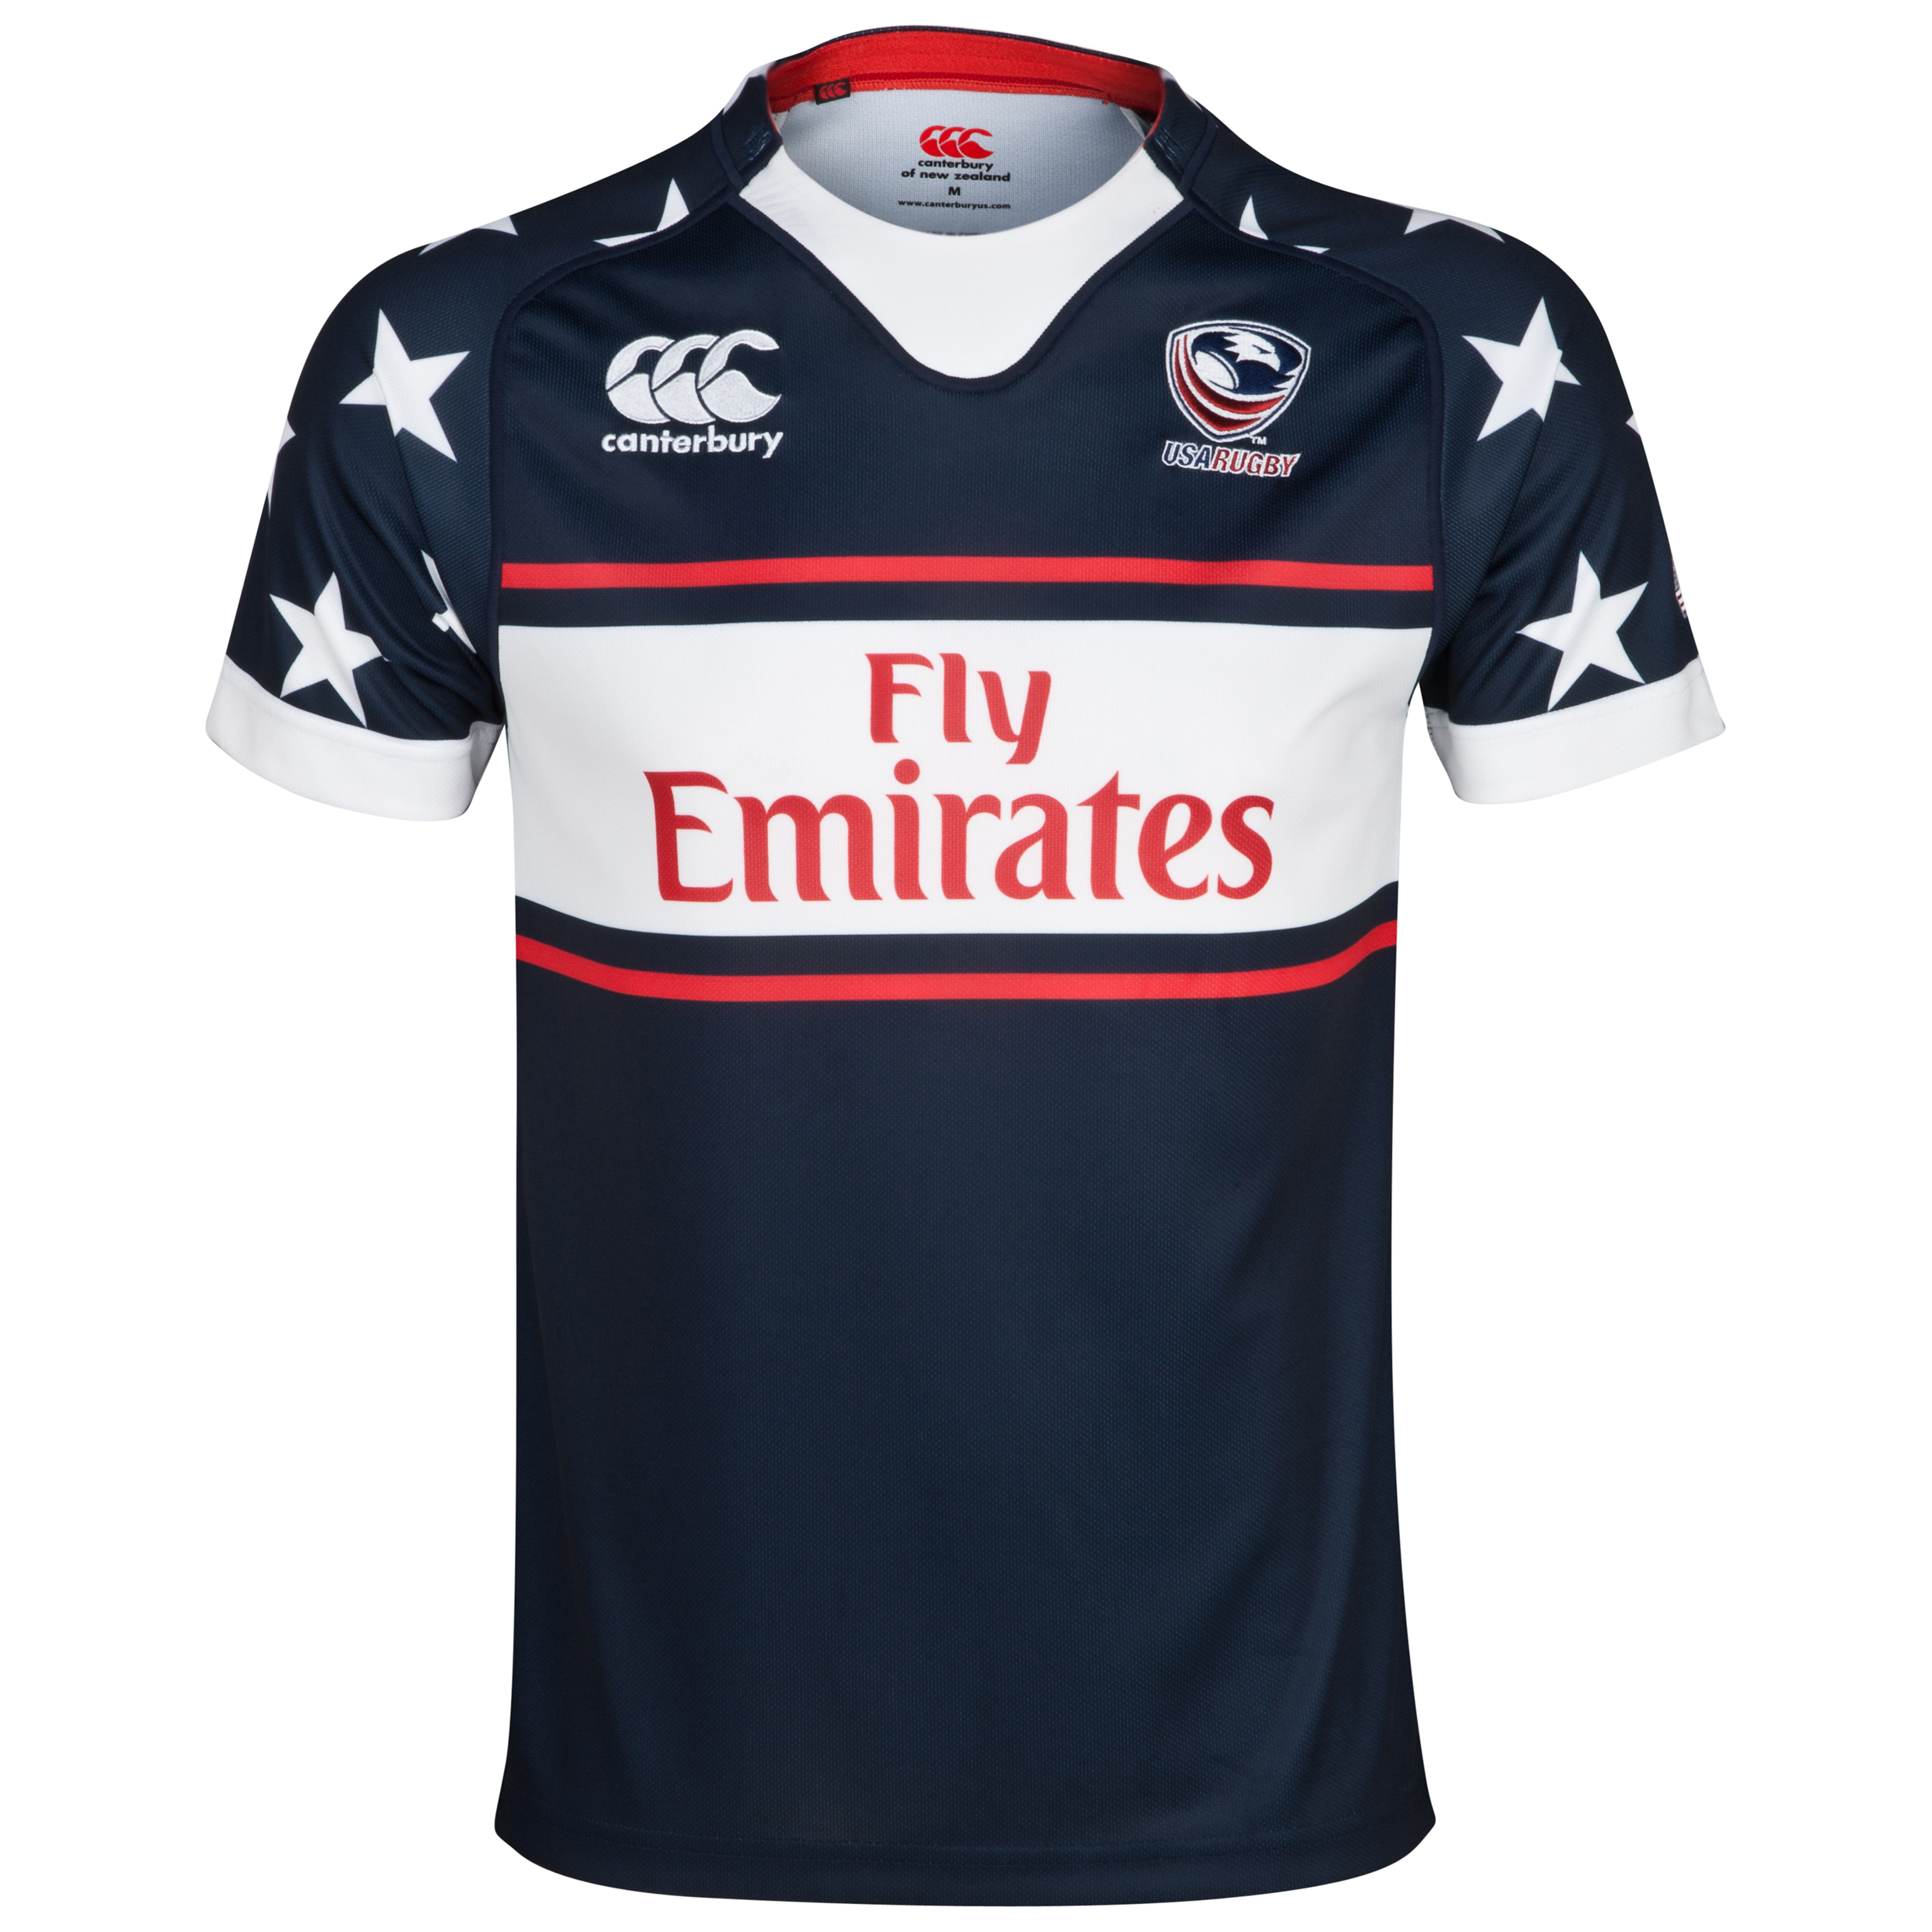 USA Eagles Alternate 7inchs Rugby Pro Shirt 2013/14